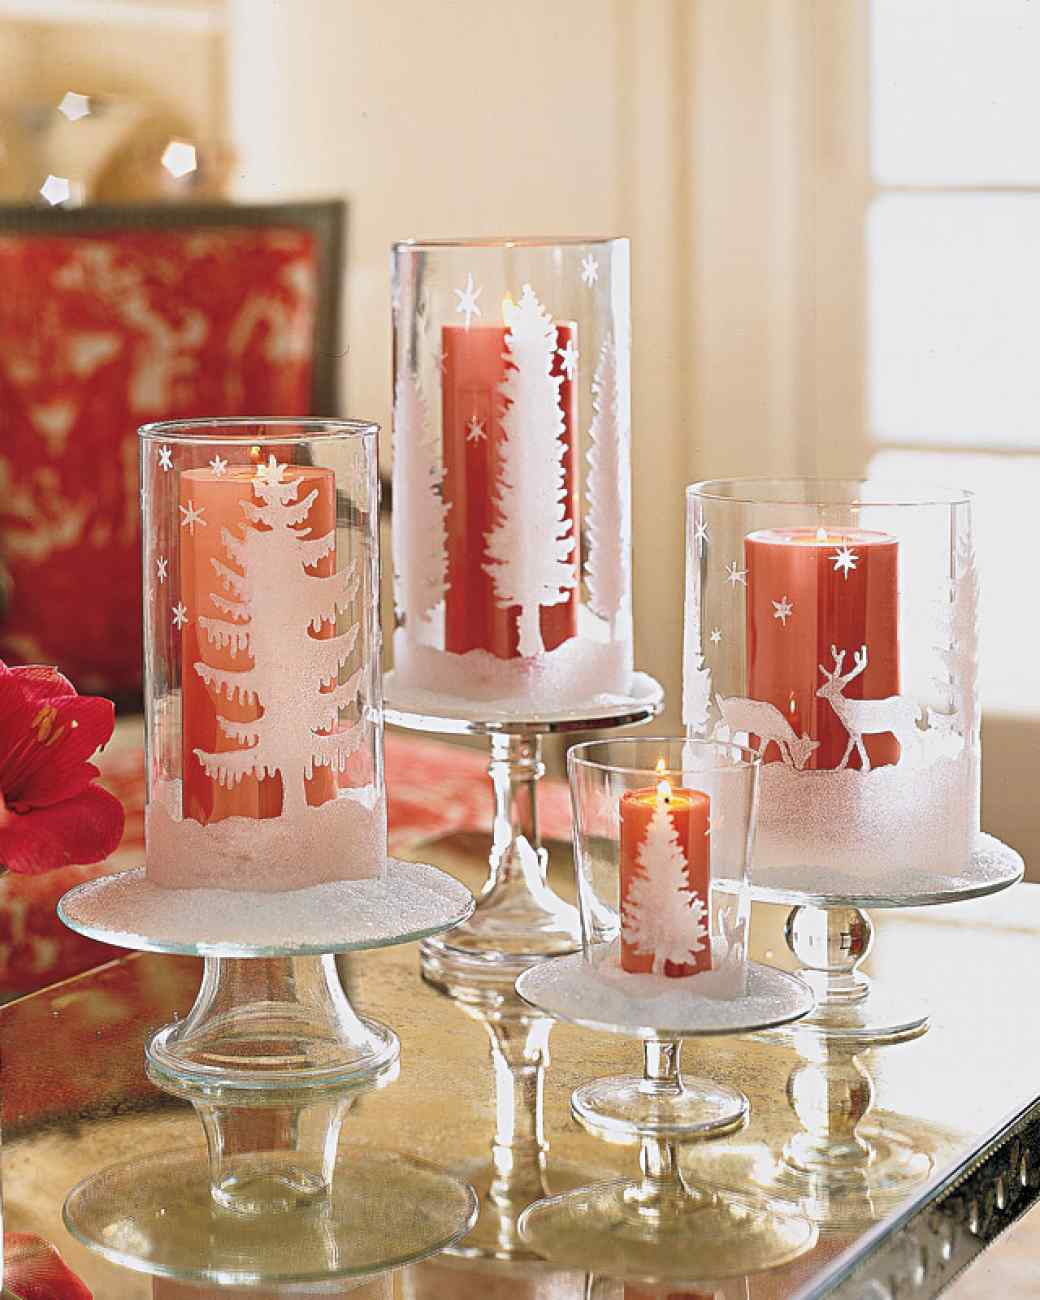 Best ideas about Christmas DIY Ideas . Save or Pin 40 Creative DIY Holiday Candles Projects Now.